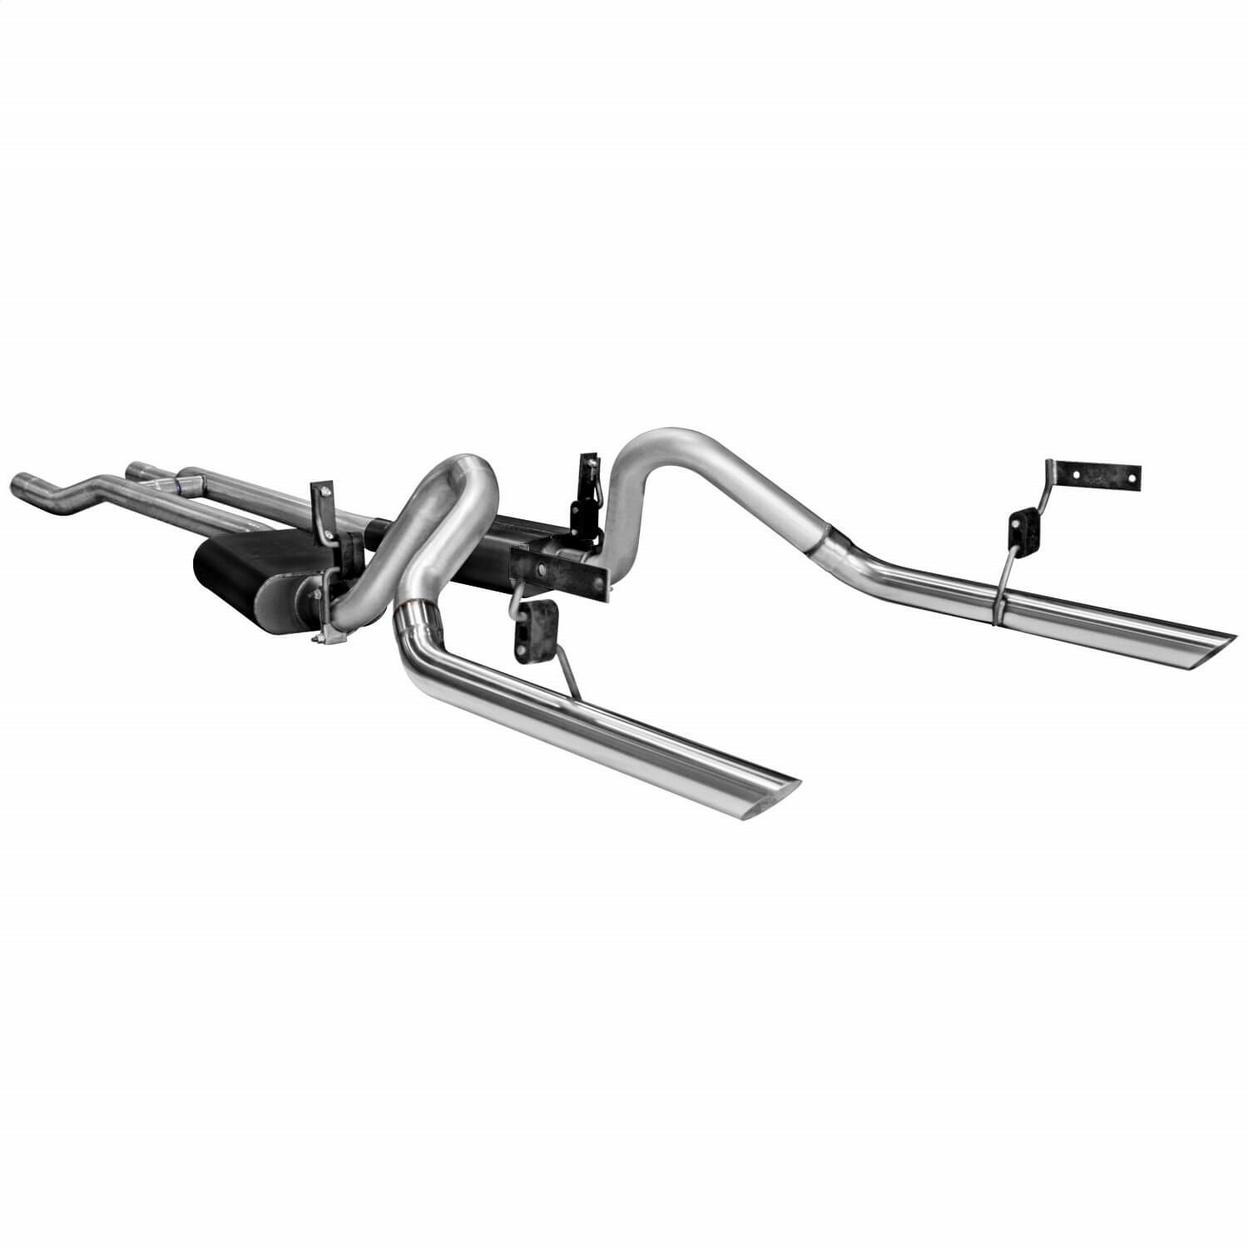 flowmaster exhaust system kit fits  1965 1966 ford mustang